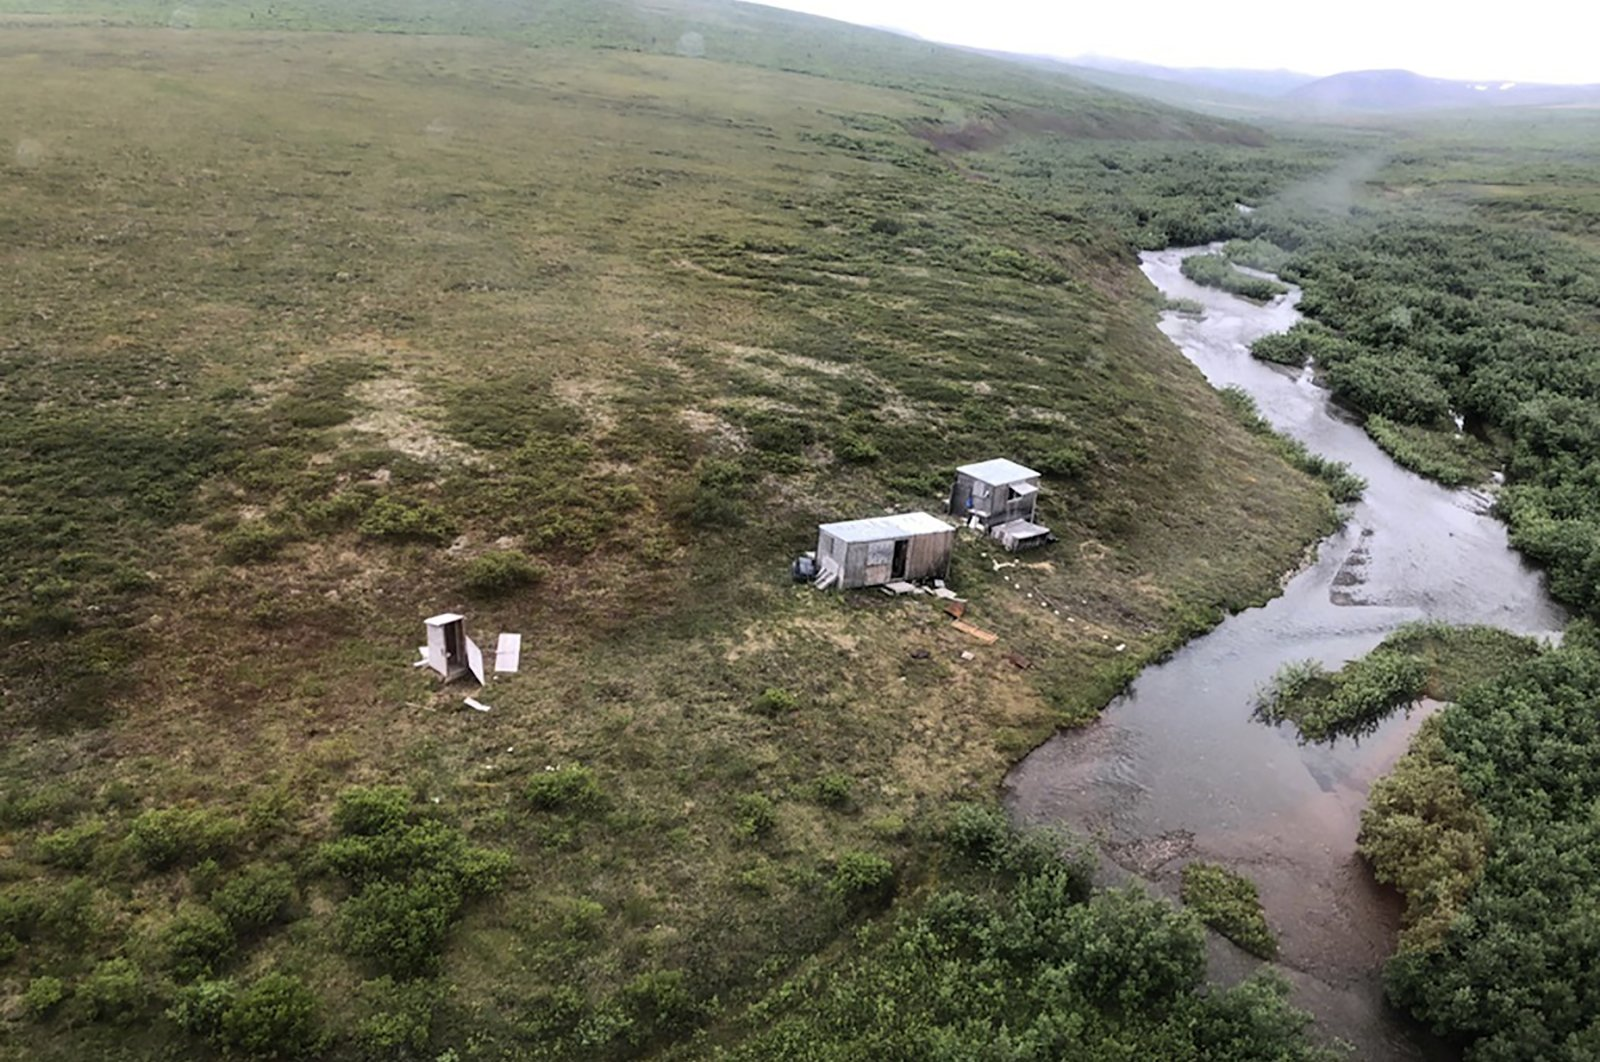 This photo provided by the U.S. Coast Guard District 17 shows a remote mining camp where a Coast Guard Air Station Kodiak aircrew rescued a survivor of a bear attack near Nome, Alaska, U.S., on July 16, 2021. (AP Photo)